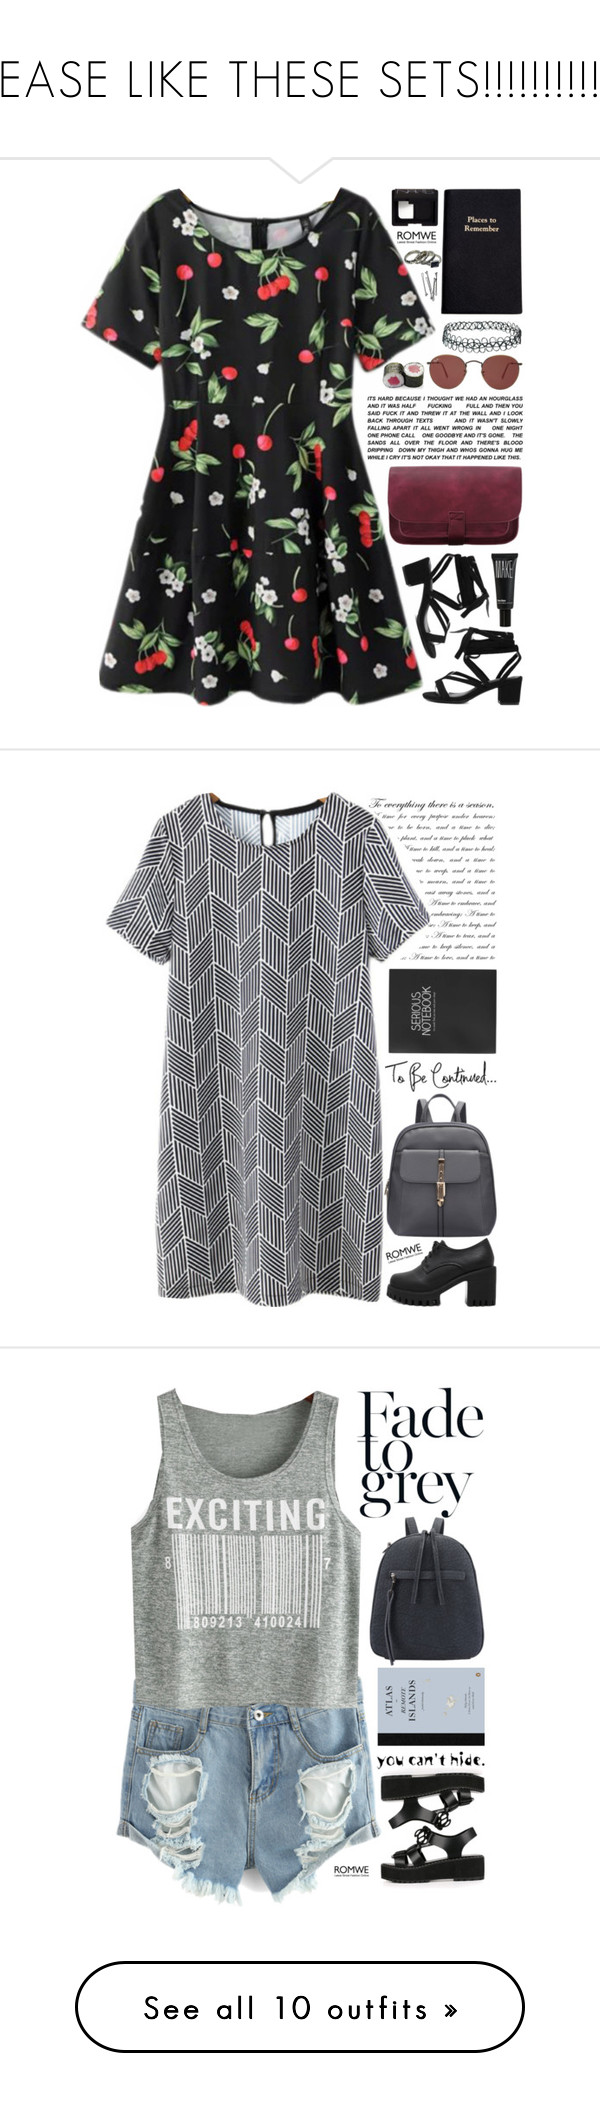 """""""PLEASE LIKE THESE SETS!!!!!!!!!!!!!!"""" by scarlett-morwenna ❤ liked on Polyvore featuring Make, Ray-Ban, Leathersmith, Topshop, BOBBY, NARS Cosmetics, vintage, NLY Accessories, Holga and Natasha Couture"""